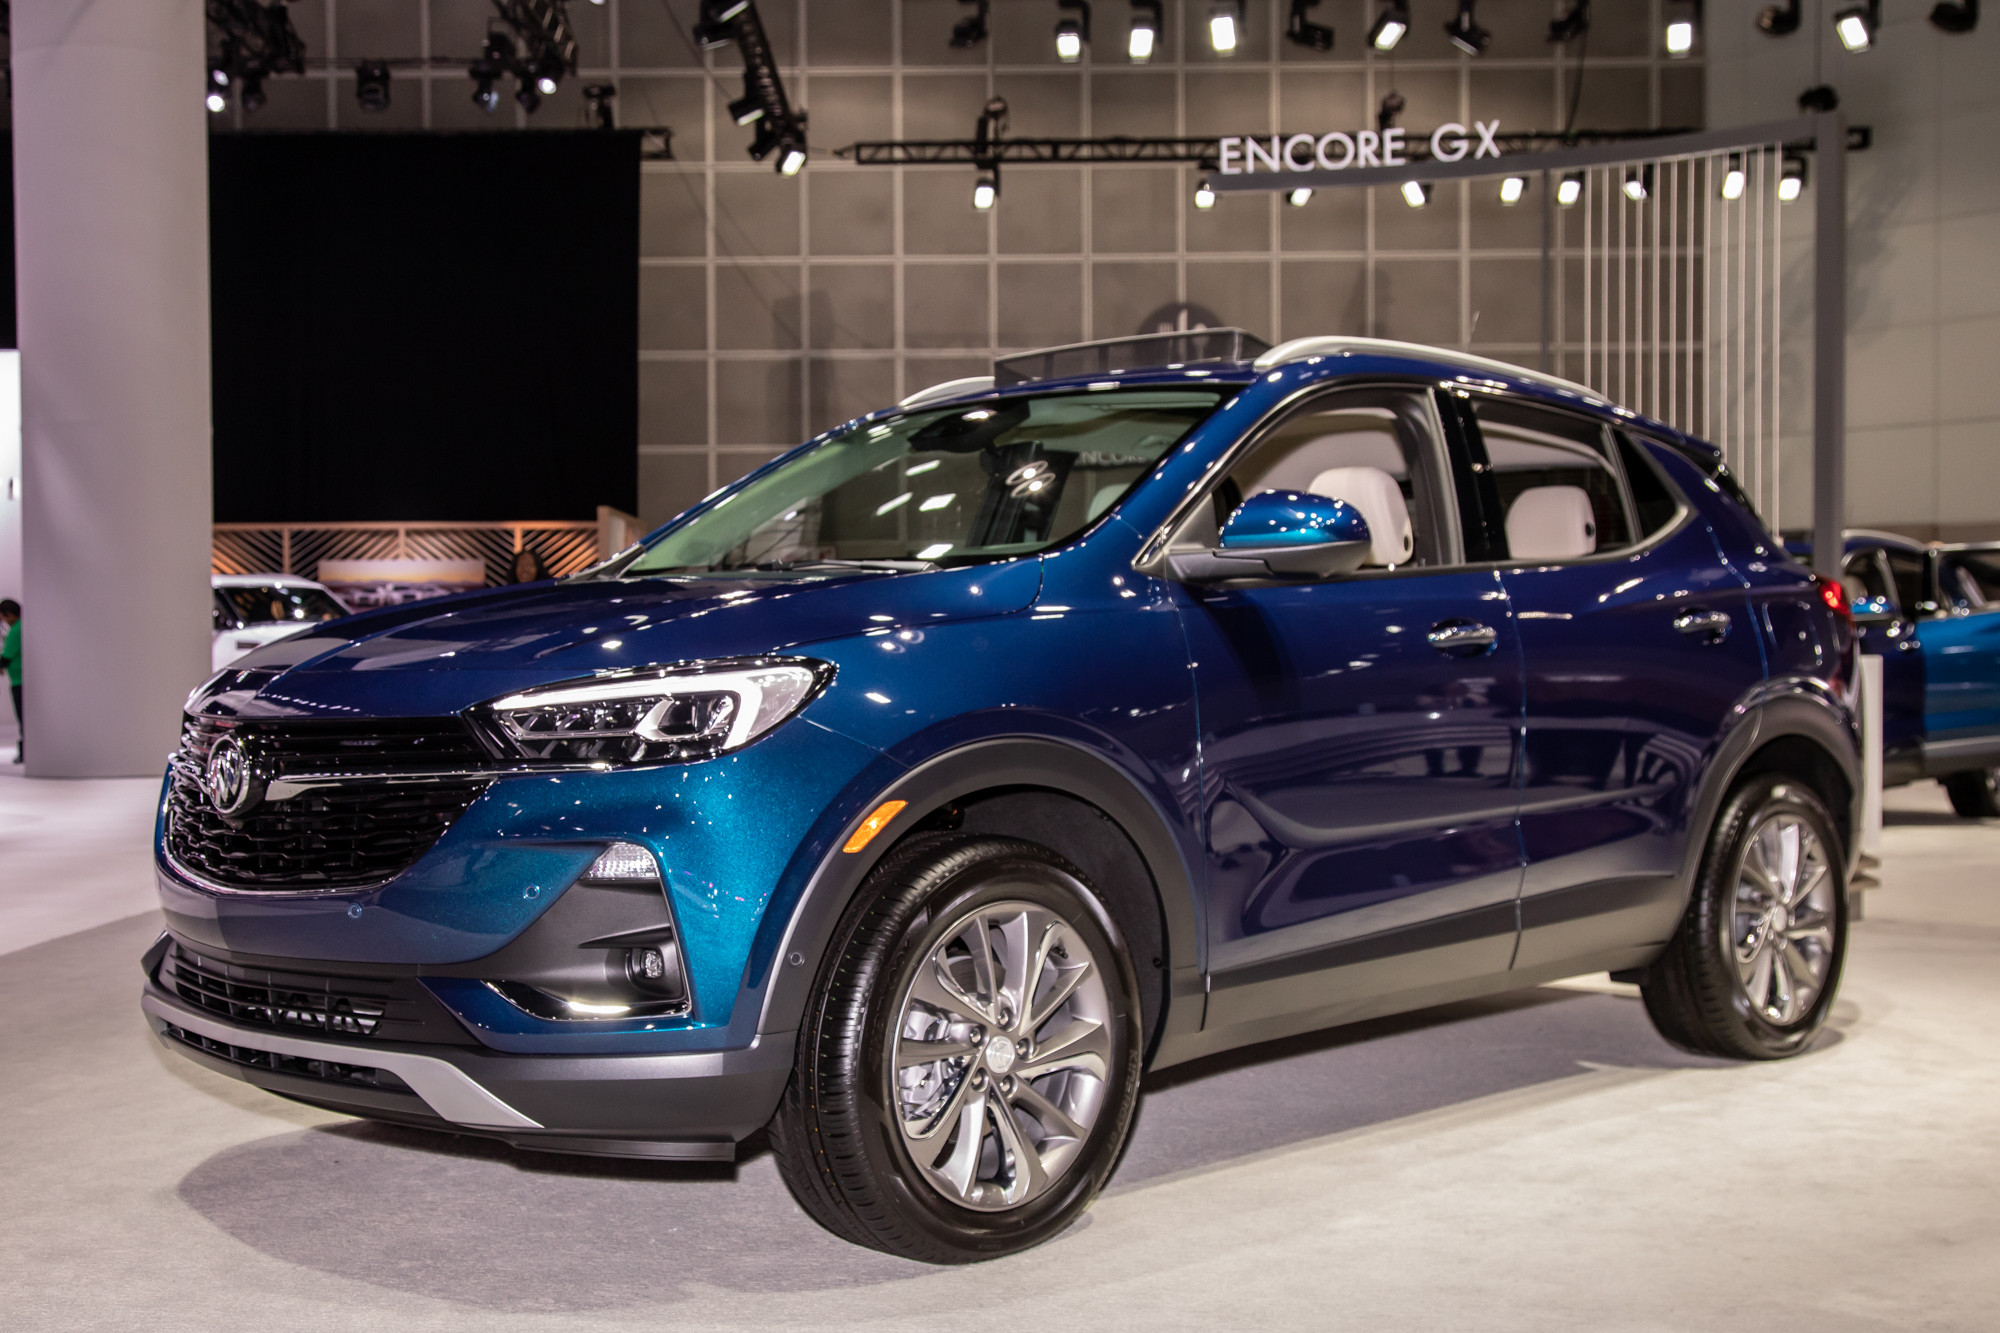 buick-encore-gx-2020-cl-01-blue-exterior-front-angle.jpg